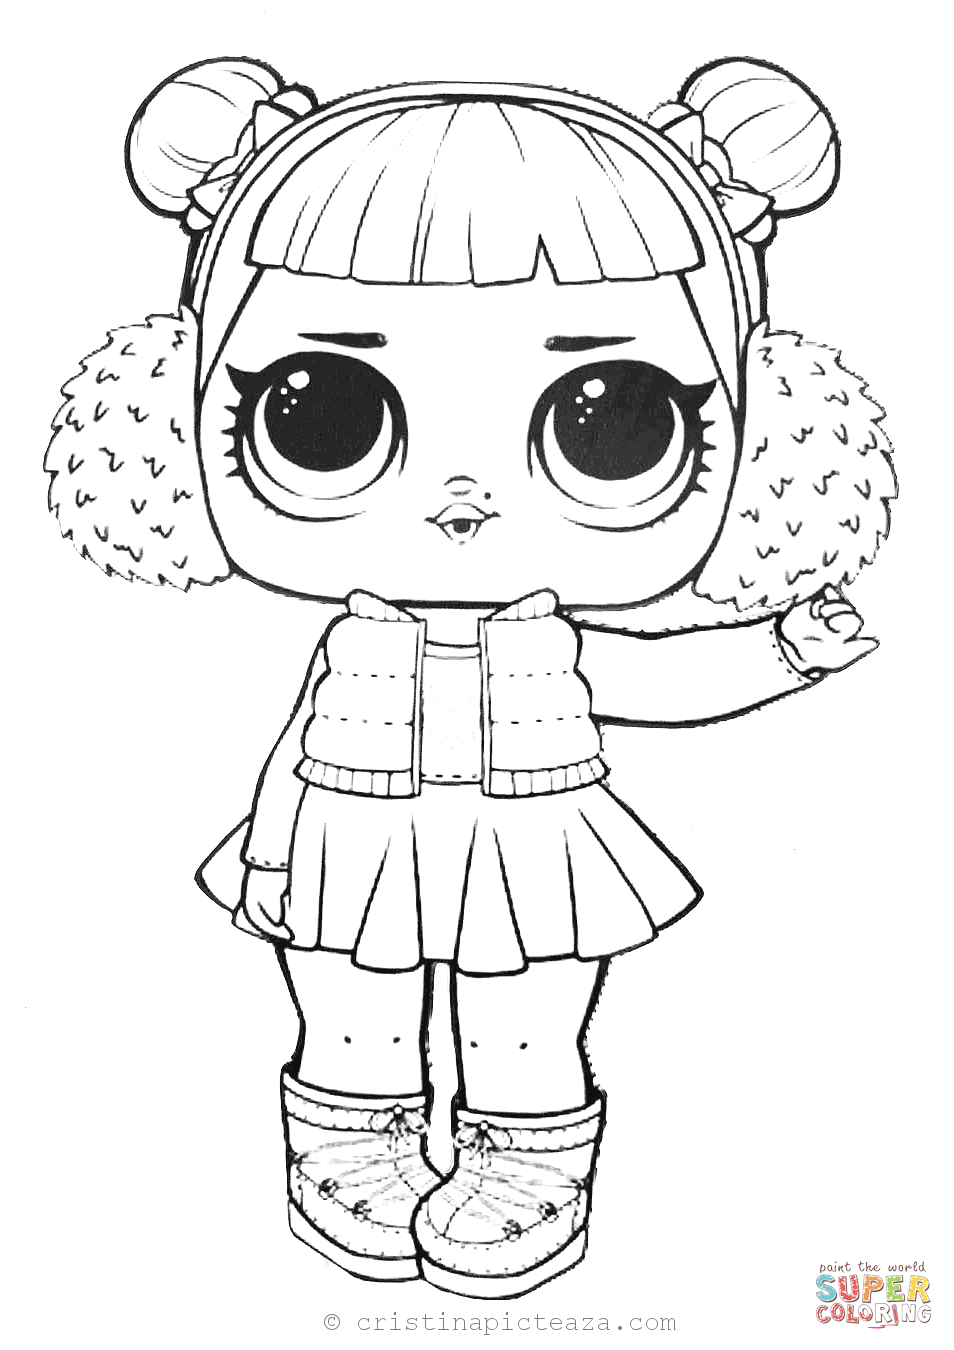 LOL Dolls Coloring Pages - Coloring sheets with LOL